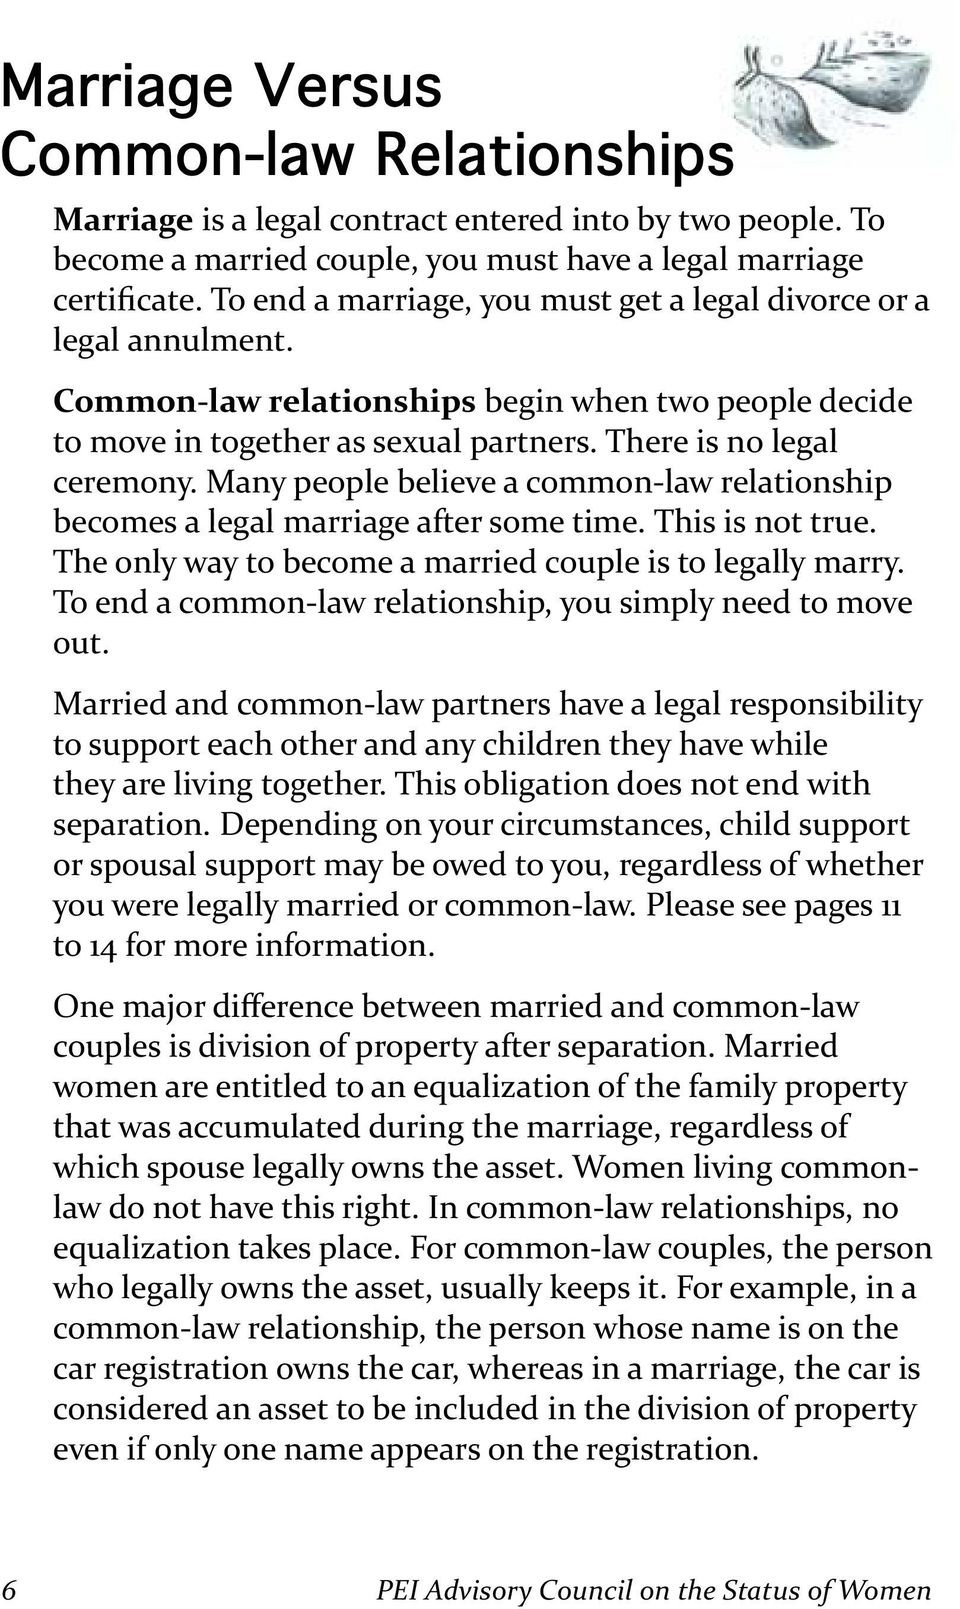 Many people believe a common- law relationship becomes a legal marriage after some time. This is not true. The only way to become a married couple is to legally marry.